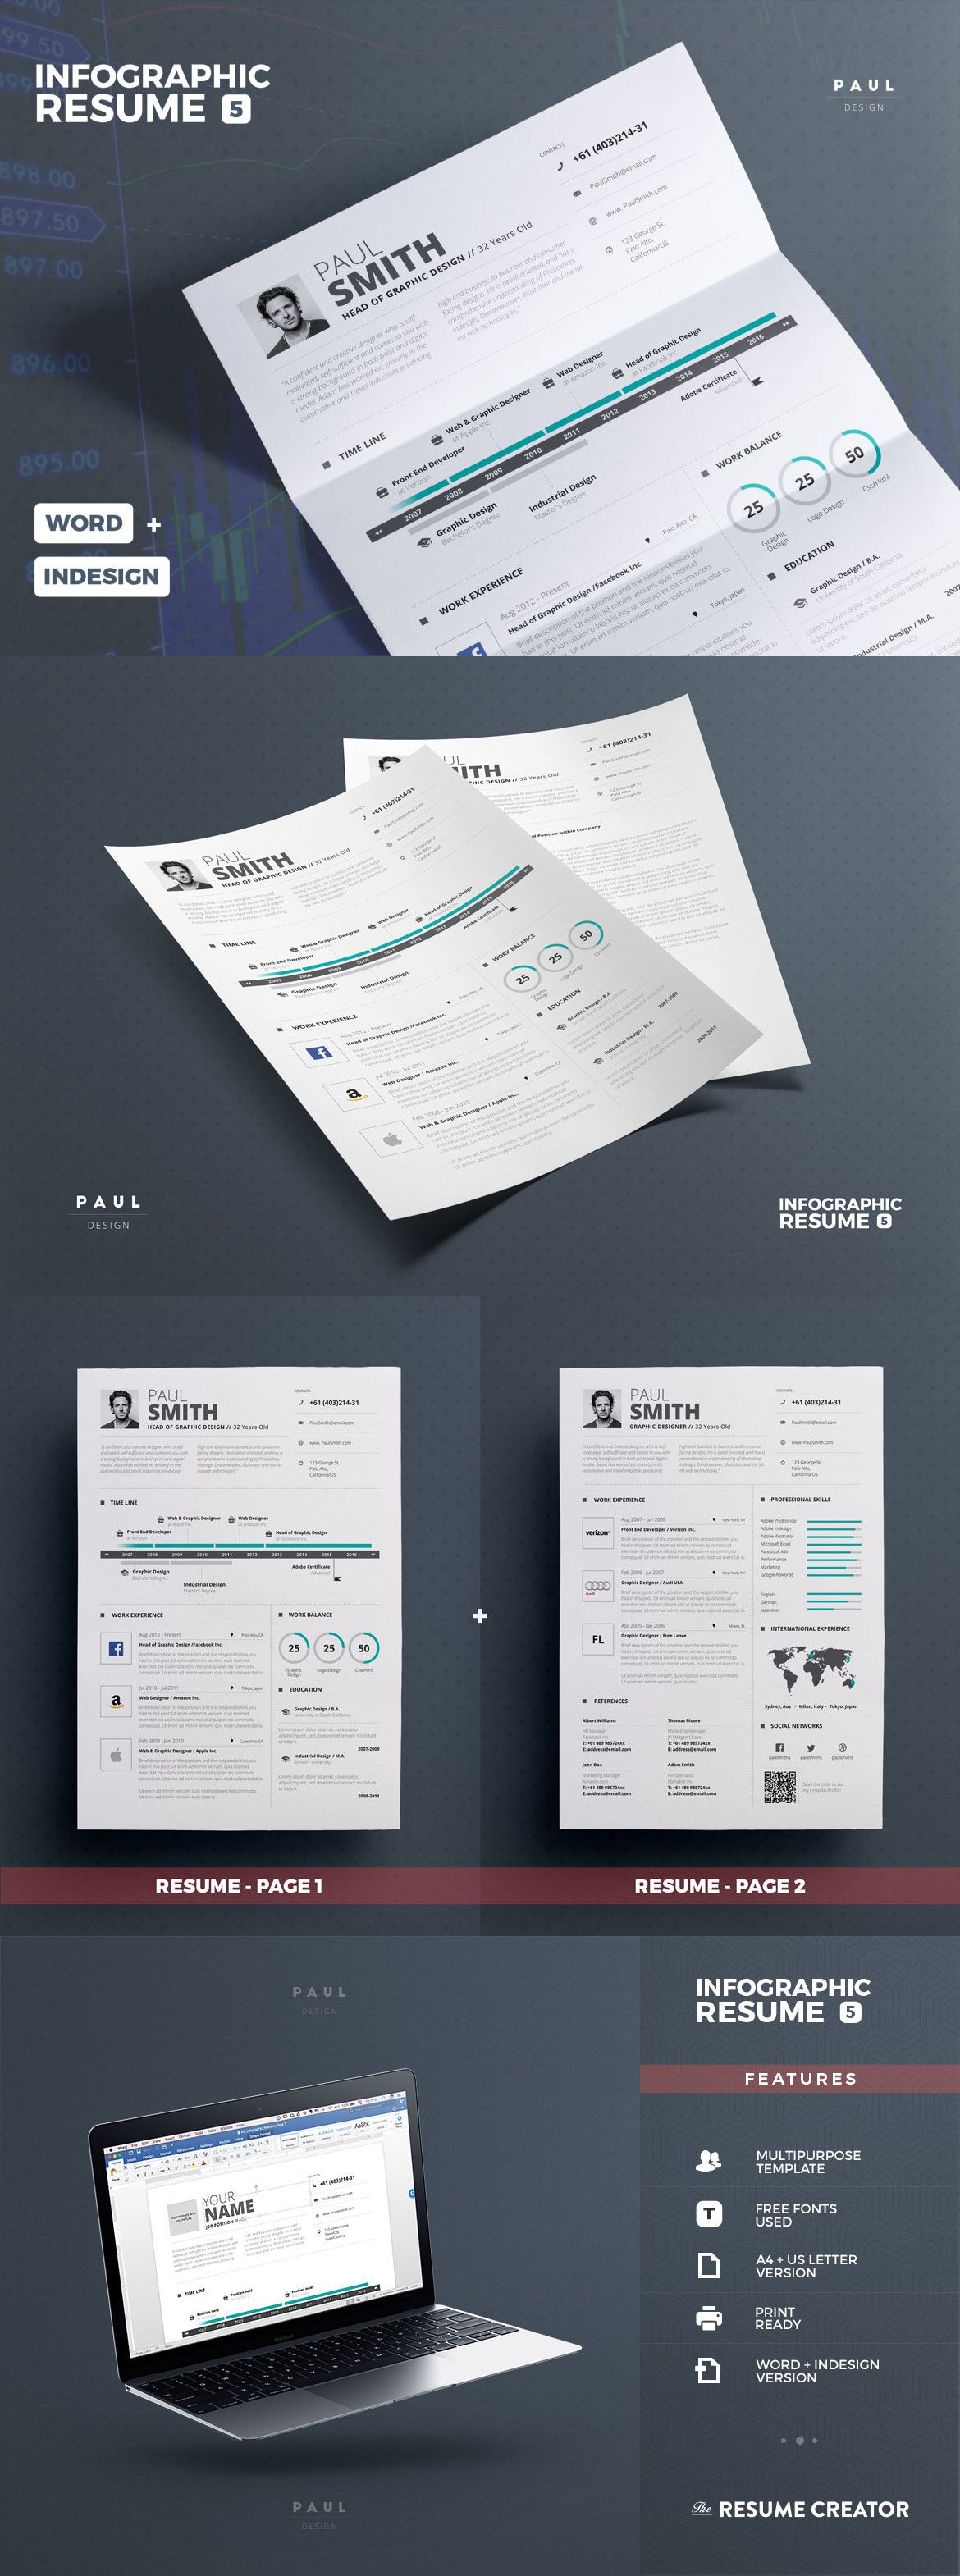 professional and creative infographic resume    cv design